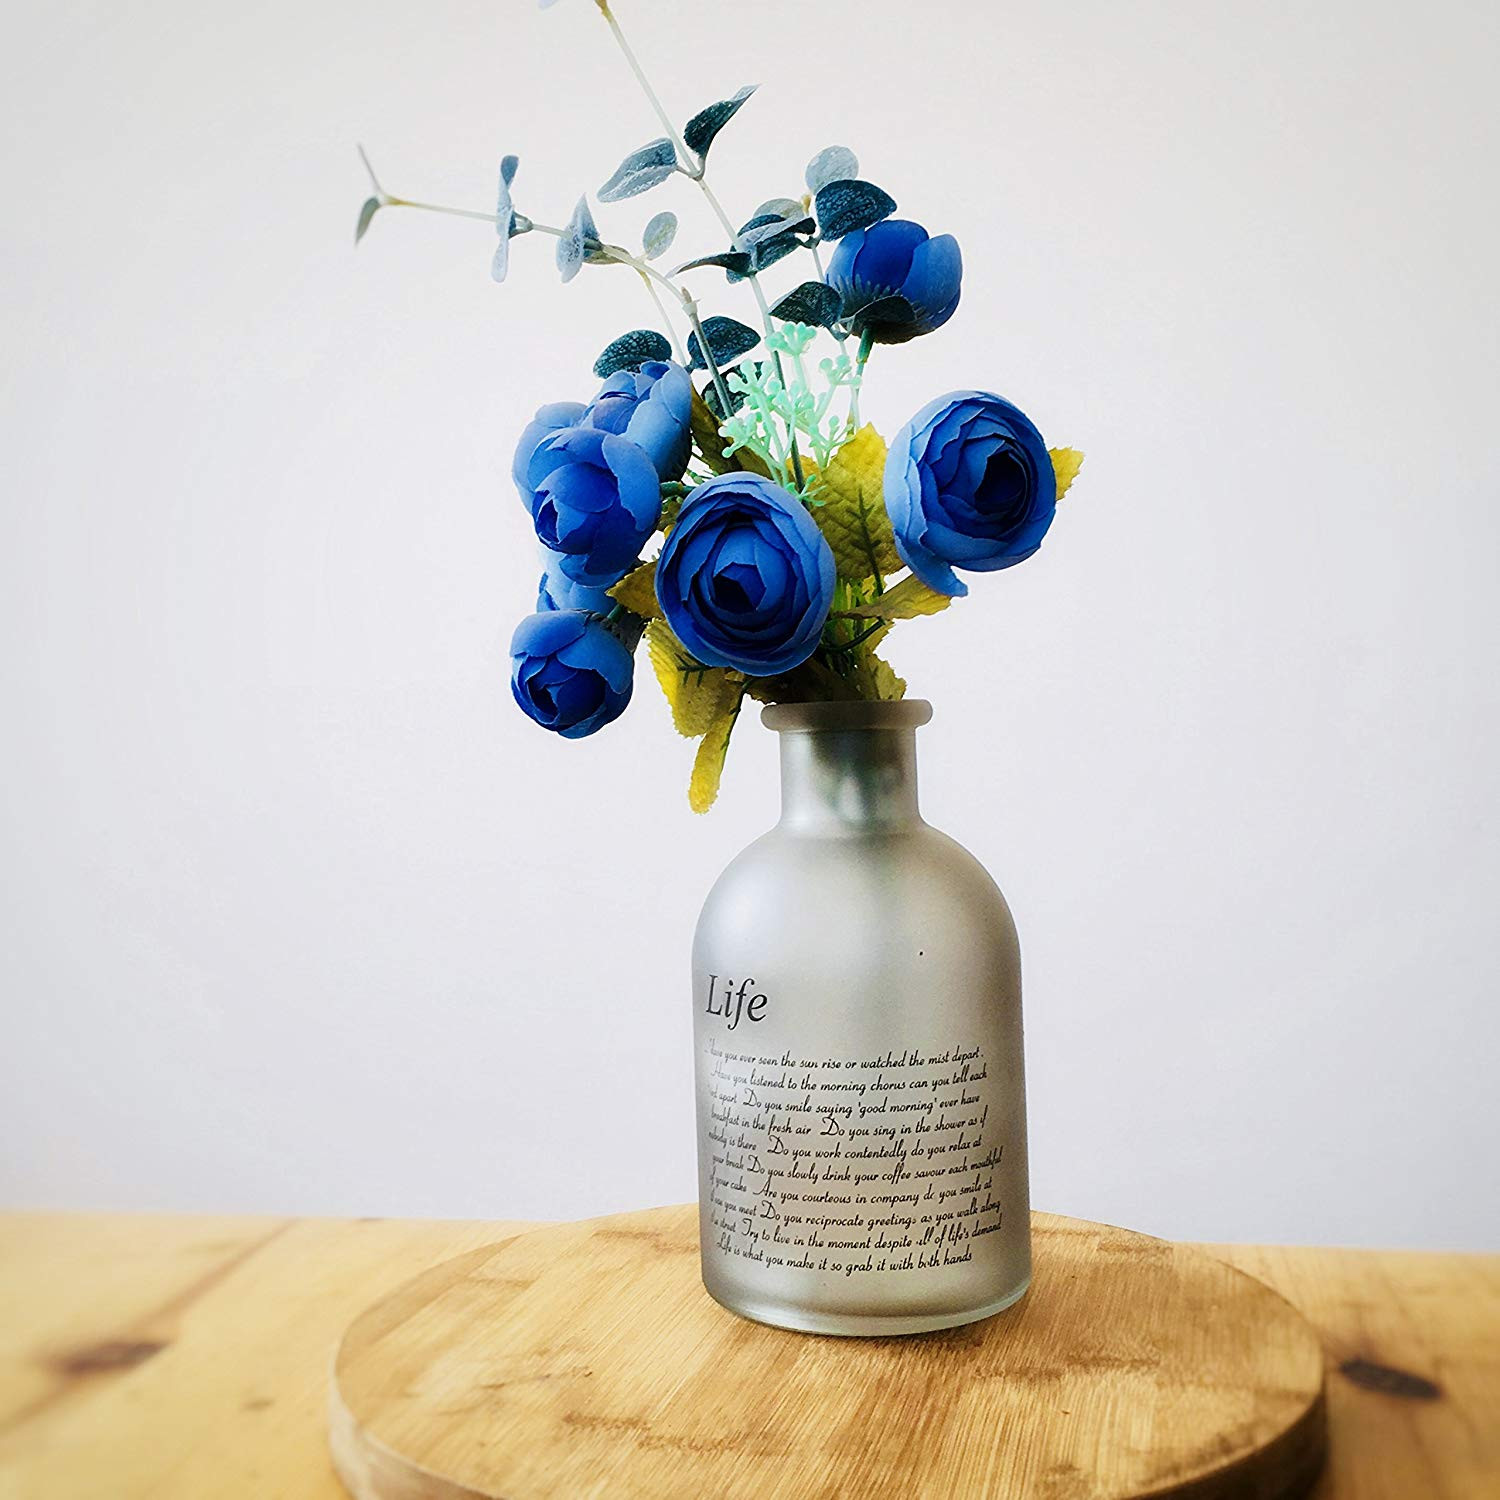 cobalt blue glass flower vases of amazon com flowersea decorative frosted glass bottle bud vases for within amazon com flowersea decorative frosted glass bottle bud vases for flowers modern design with life poem laurel clear home kitchen